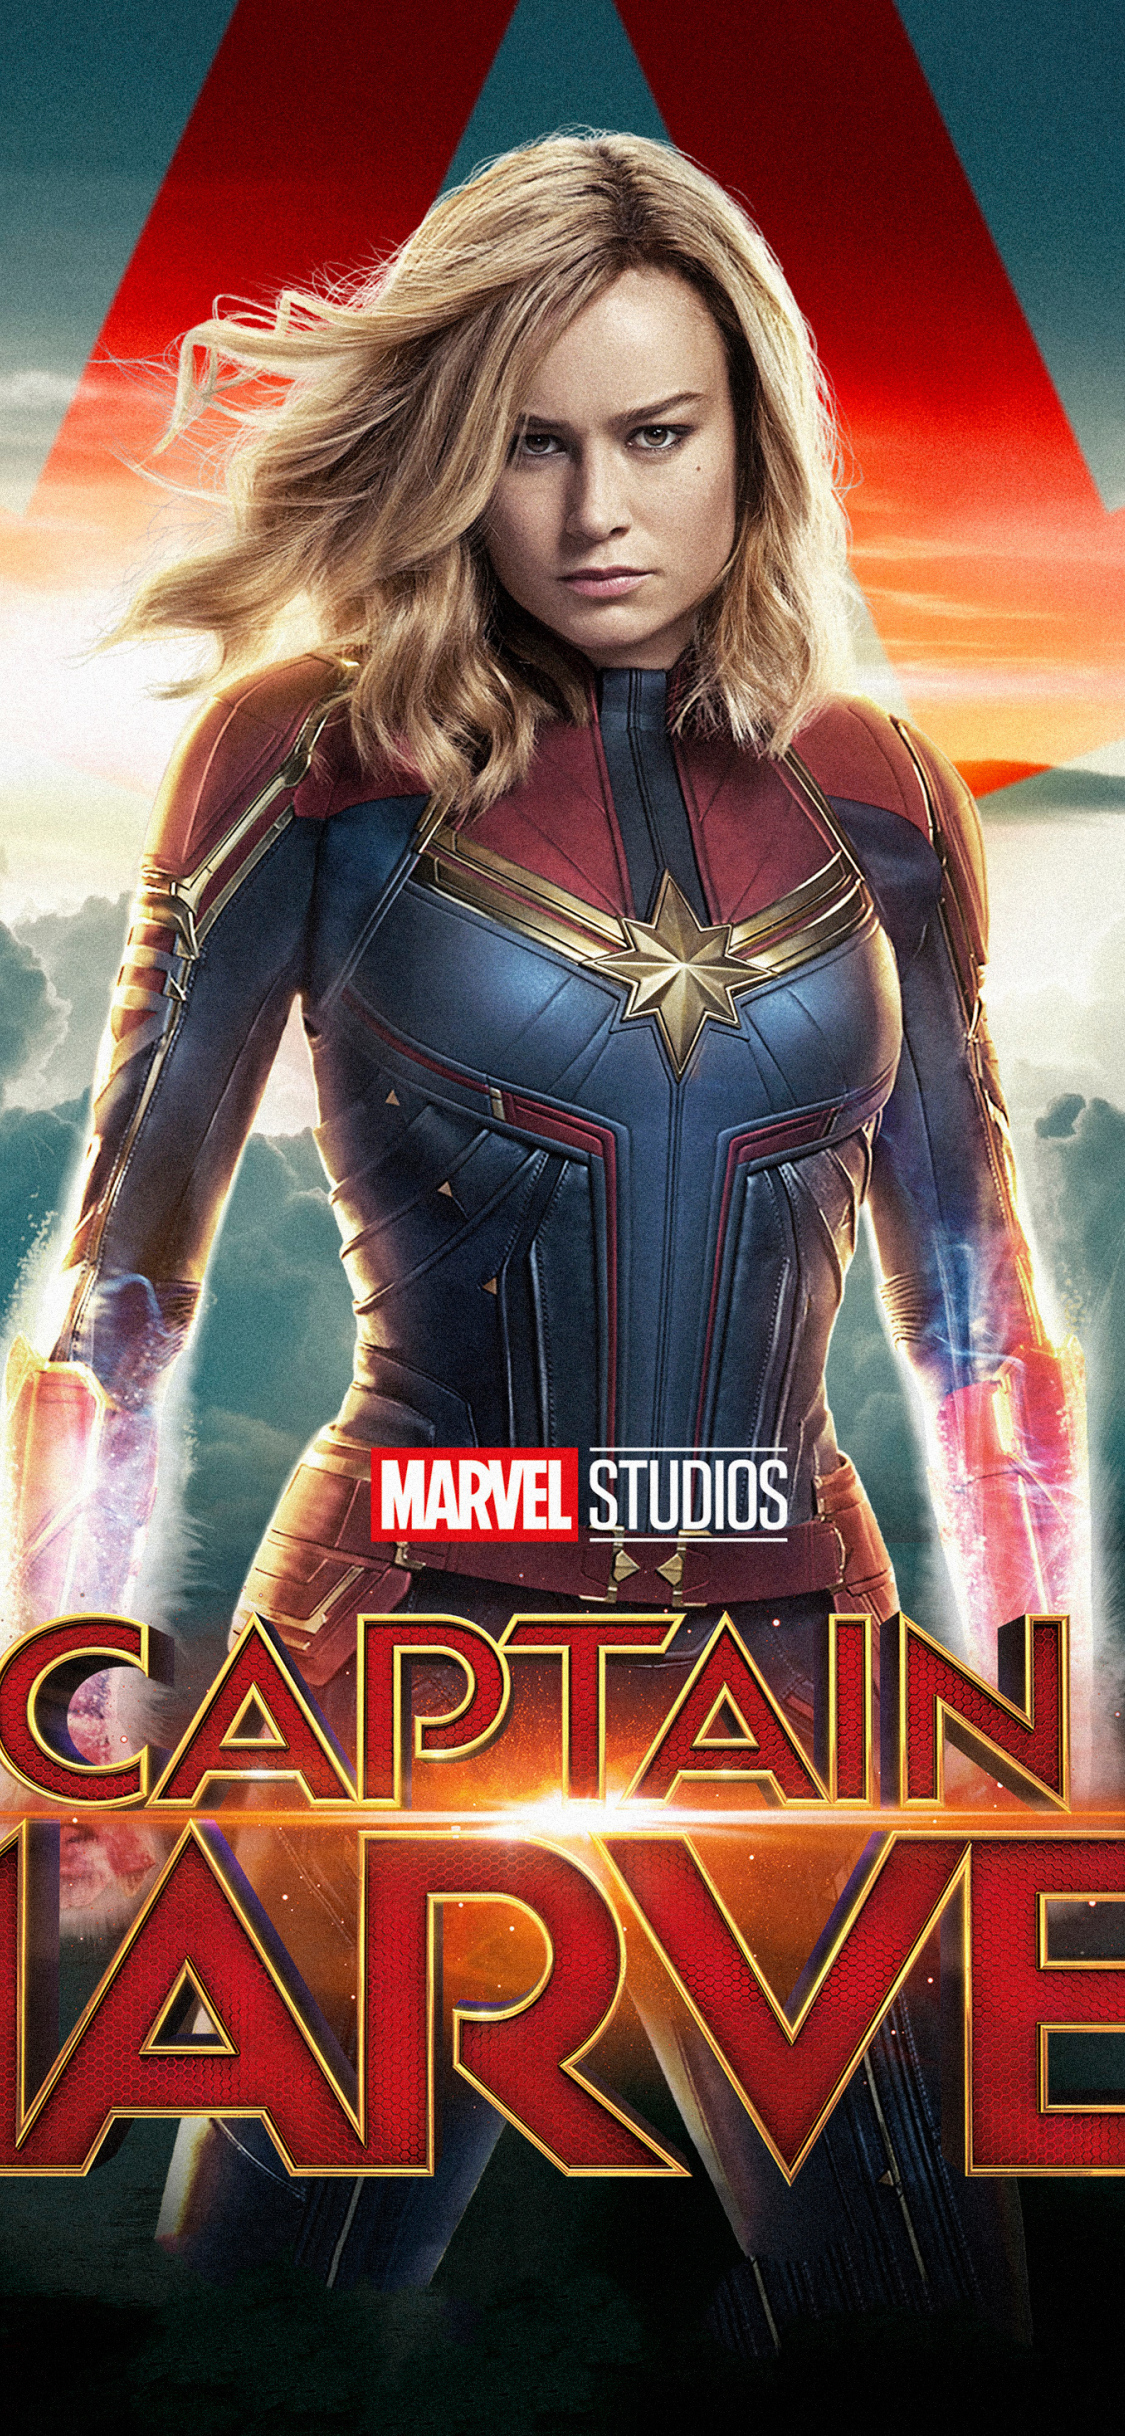 Captain Marvel Iphone X Wallpaper Hd , HD Wallpaper & Backgrounds